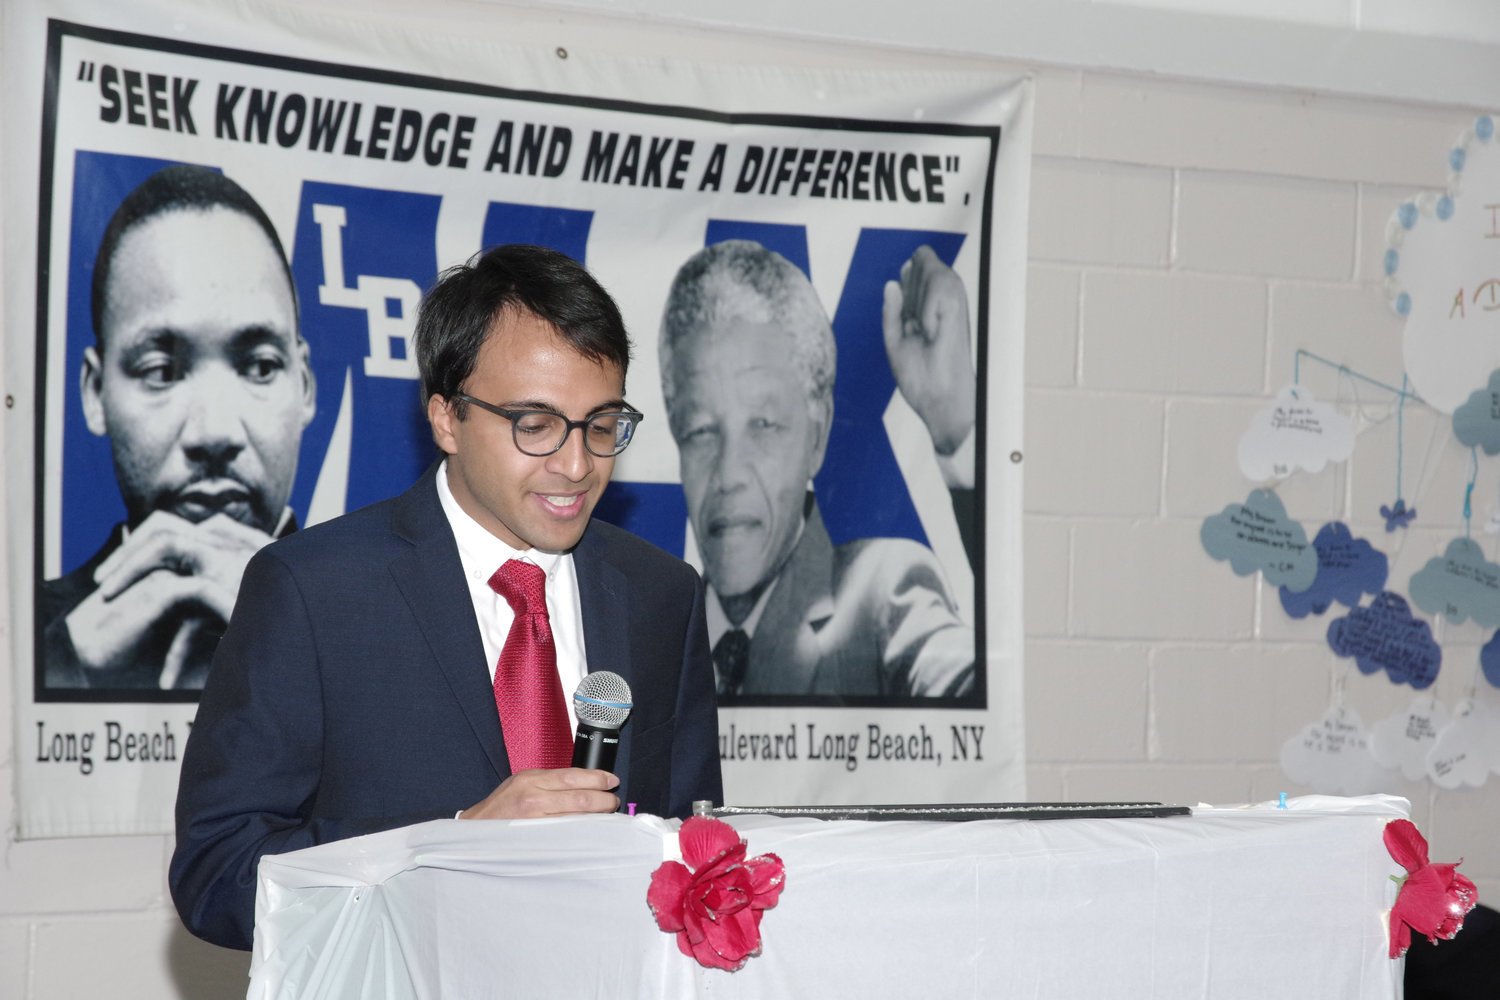 Keynote speaker Nikhil Goyal said King's ideals of tolerance and freedom are more relevant today.